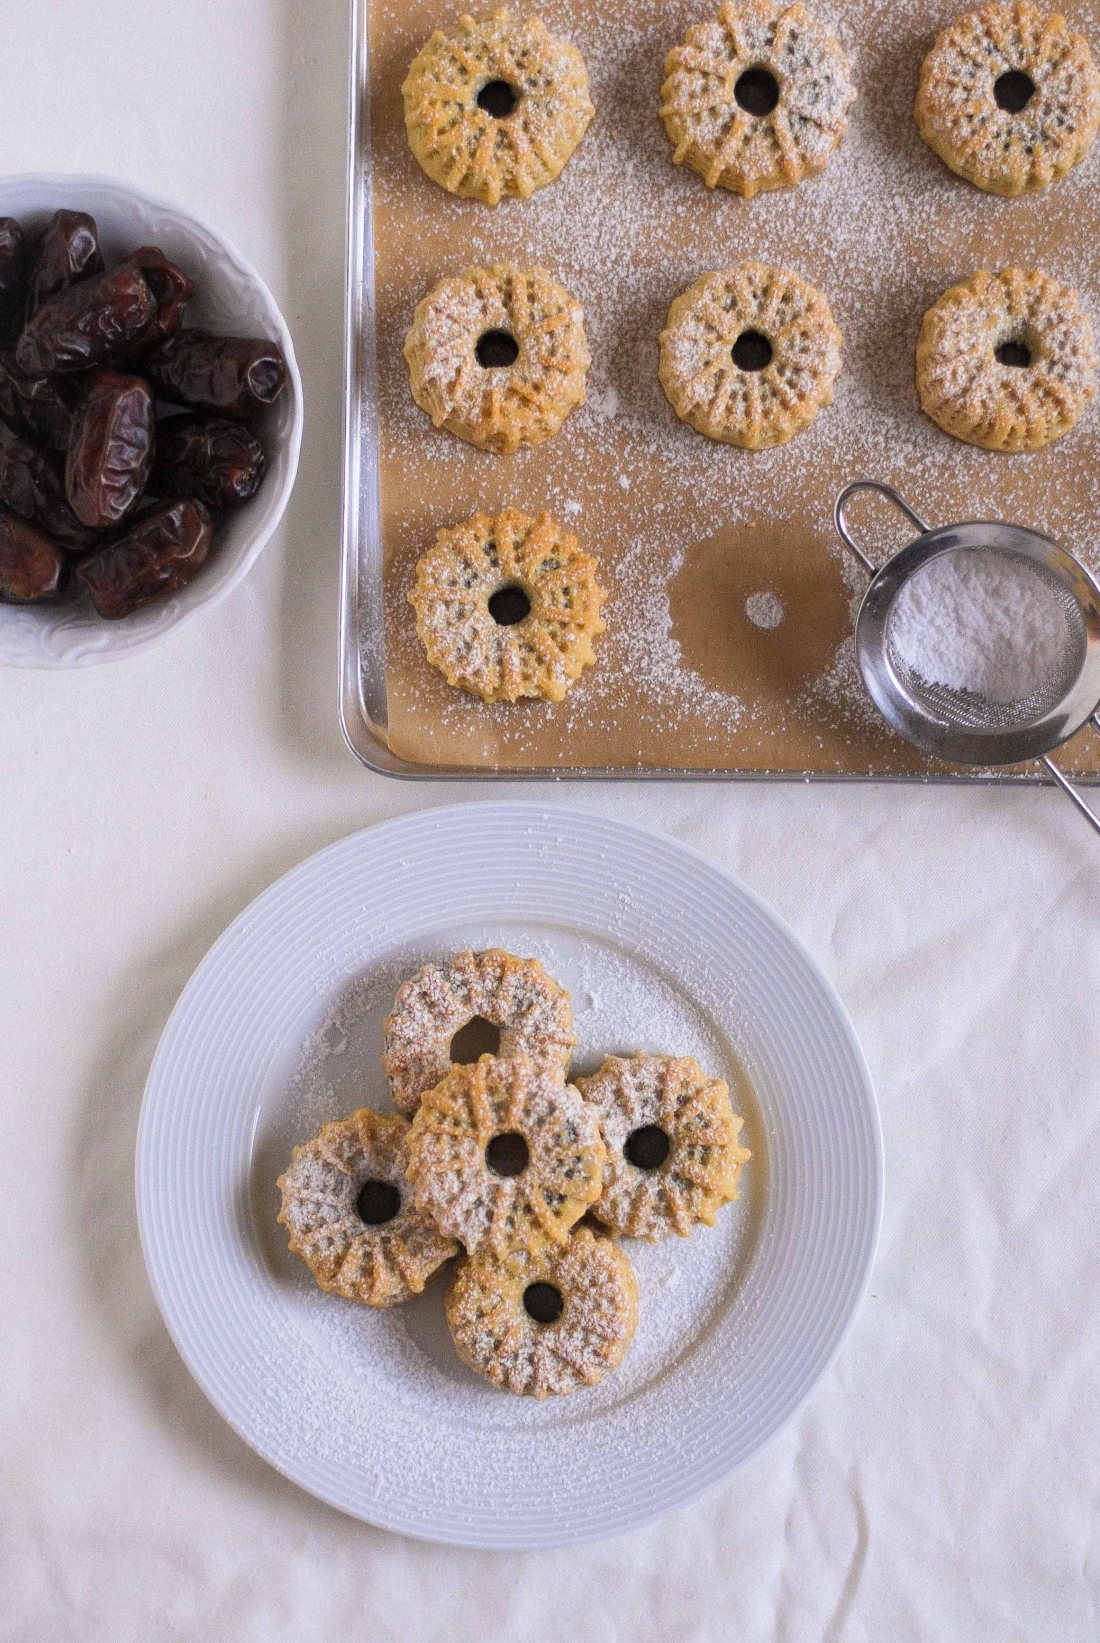 Ma'amoul Bil Tamer (Semolina Date Cookies) with powdered sugar